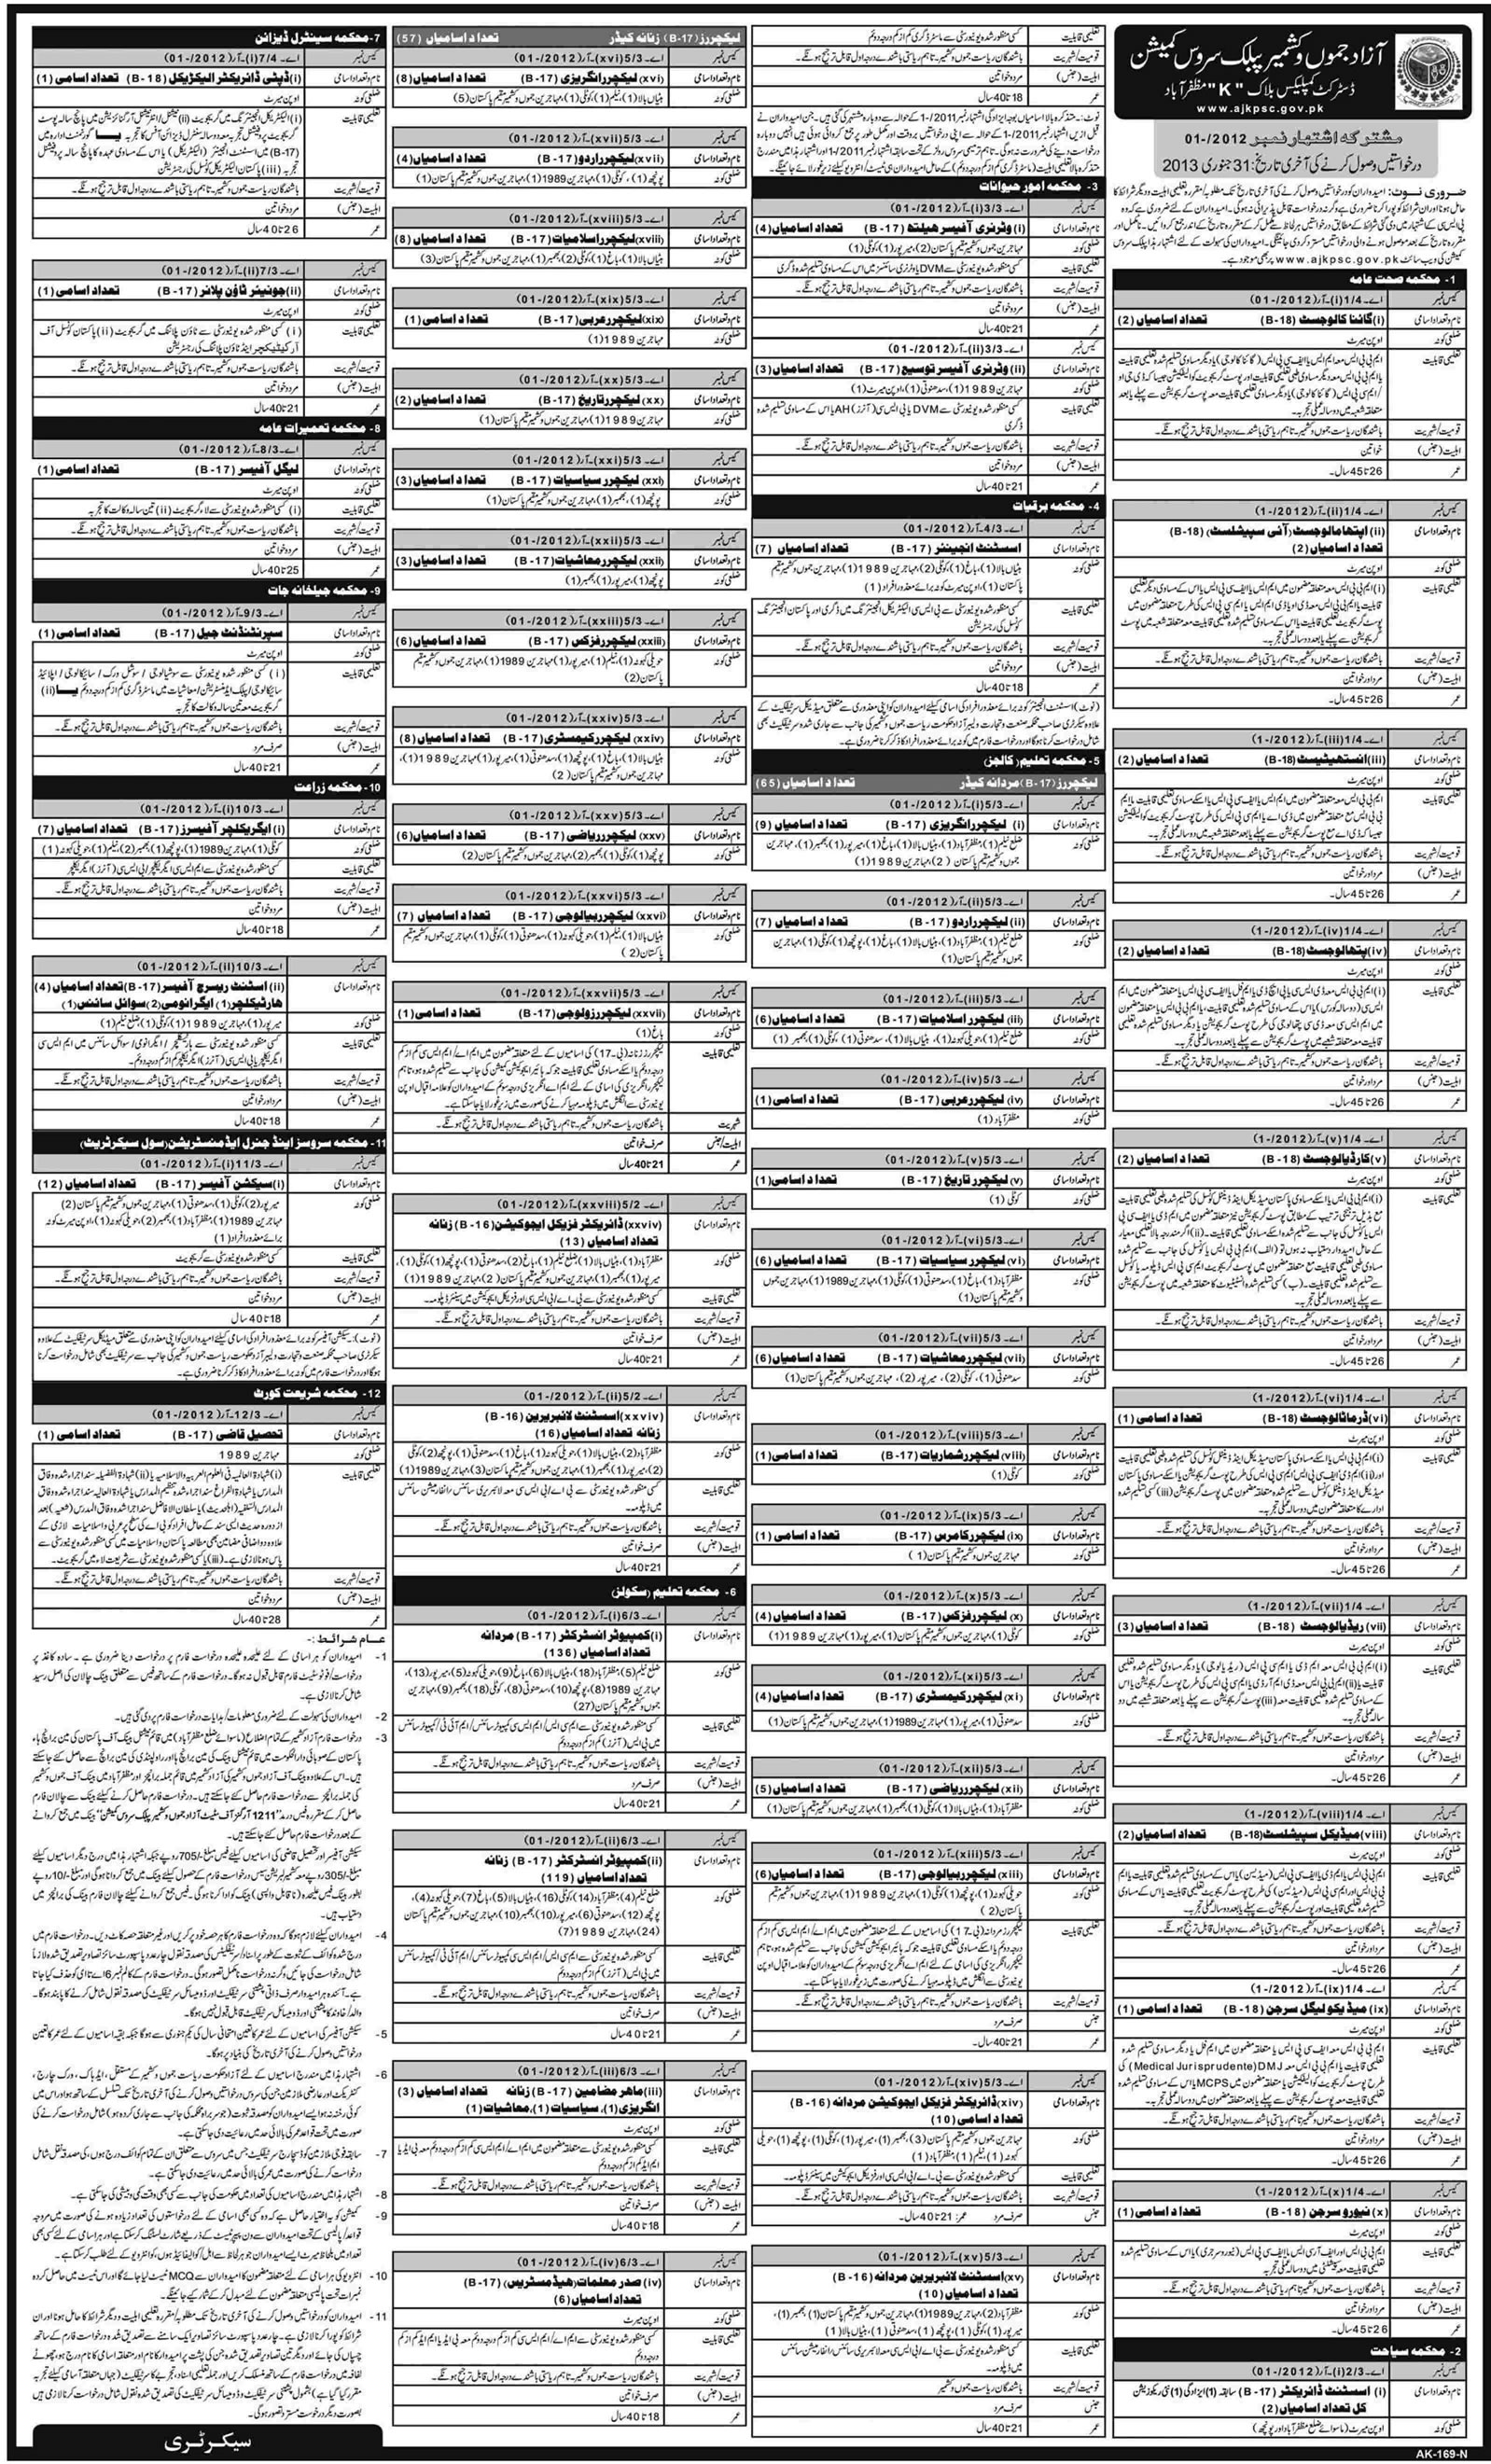 AJKPSC Jobs 2012 December Advertisement